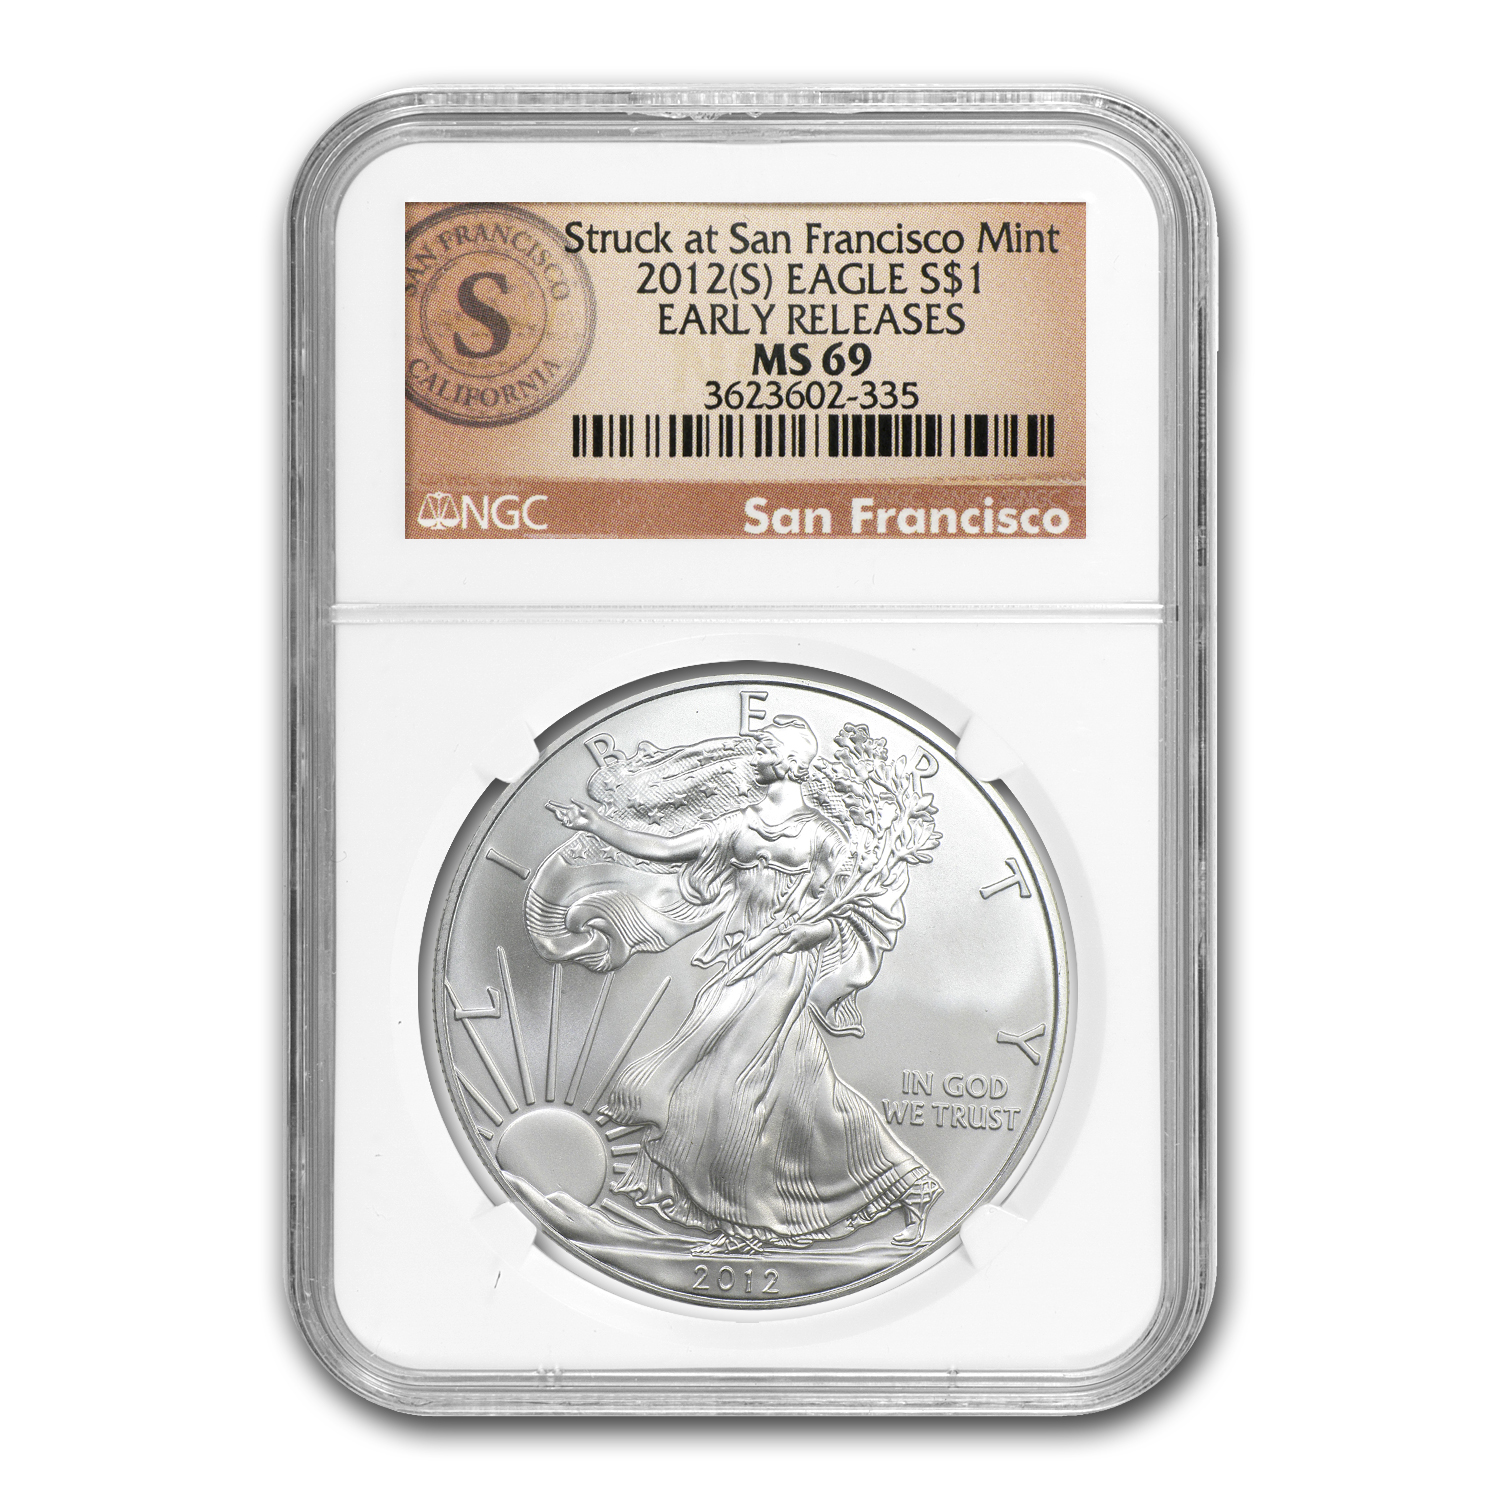 2012 (S) Silver American Eagle MS-69 NGC (Early Releases)